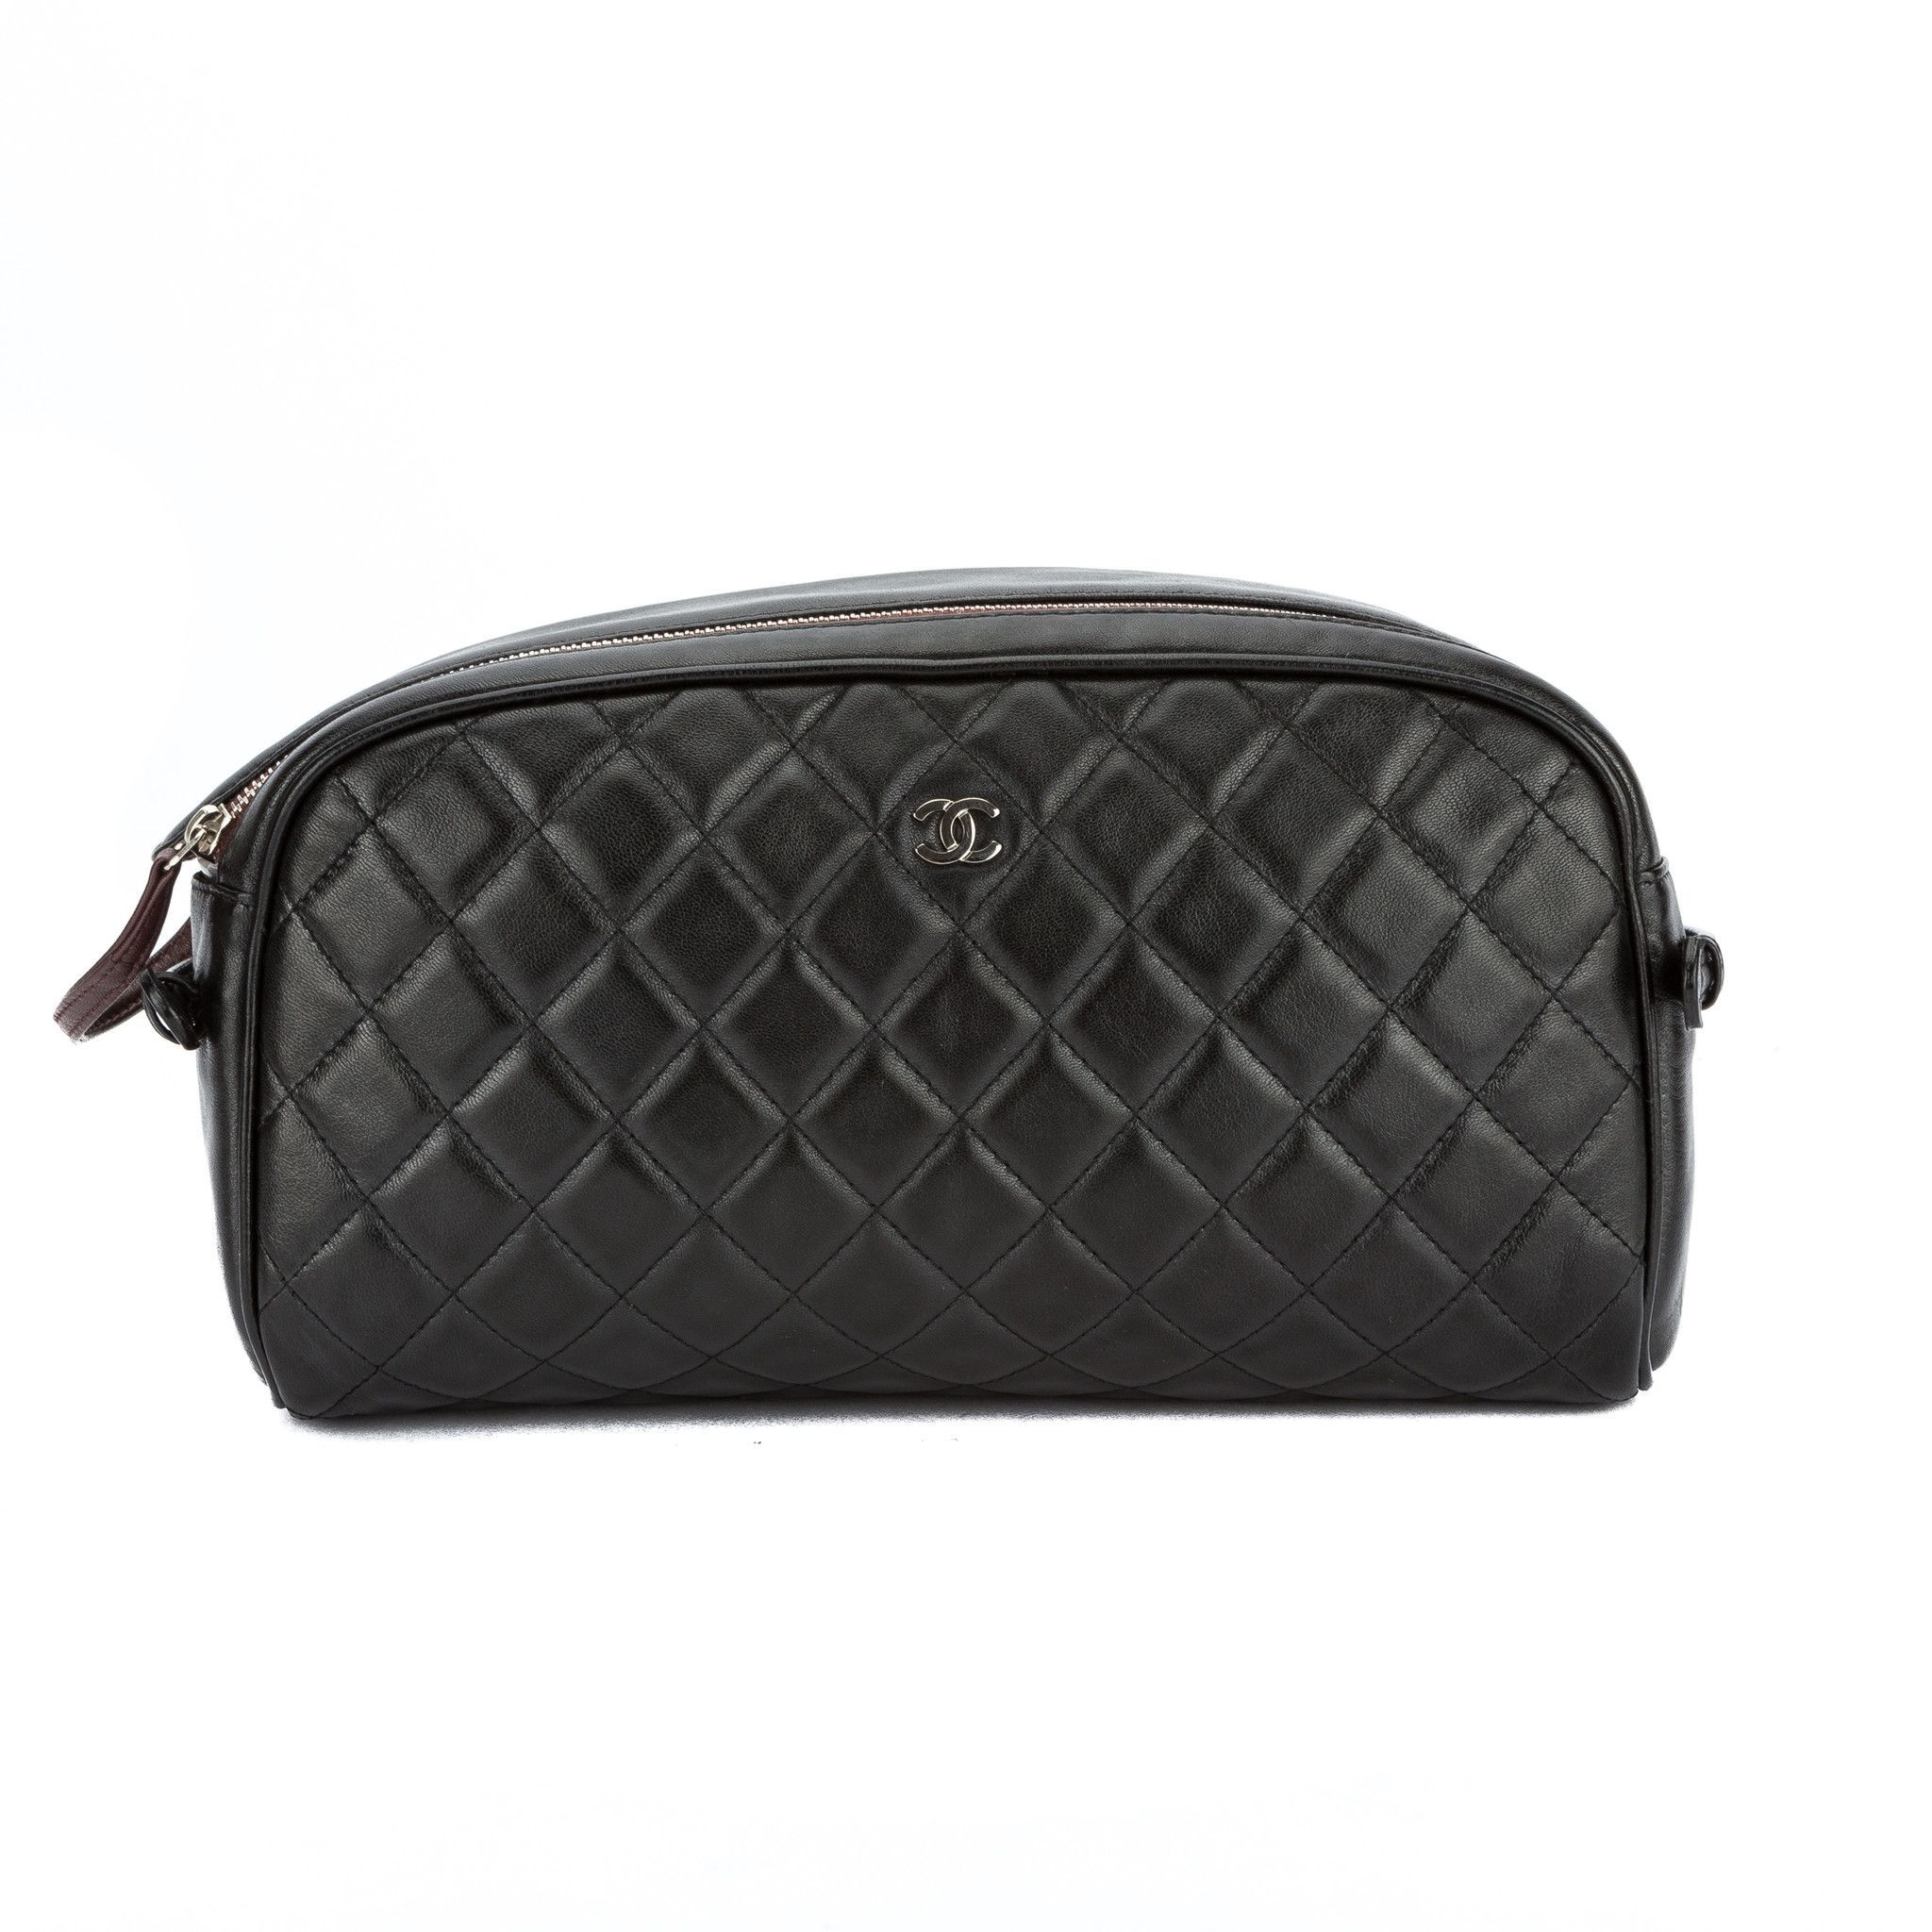 cc17f1b541 Chanel Black Quilted Lambskin Leather Matrasse Cosmetic Pouch (Pre Owned)